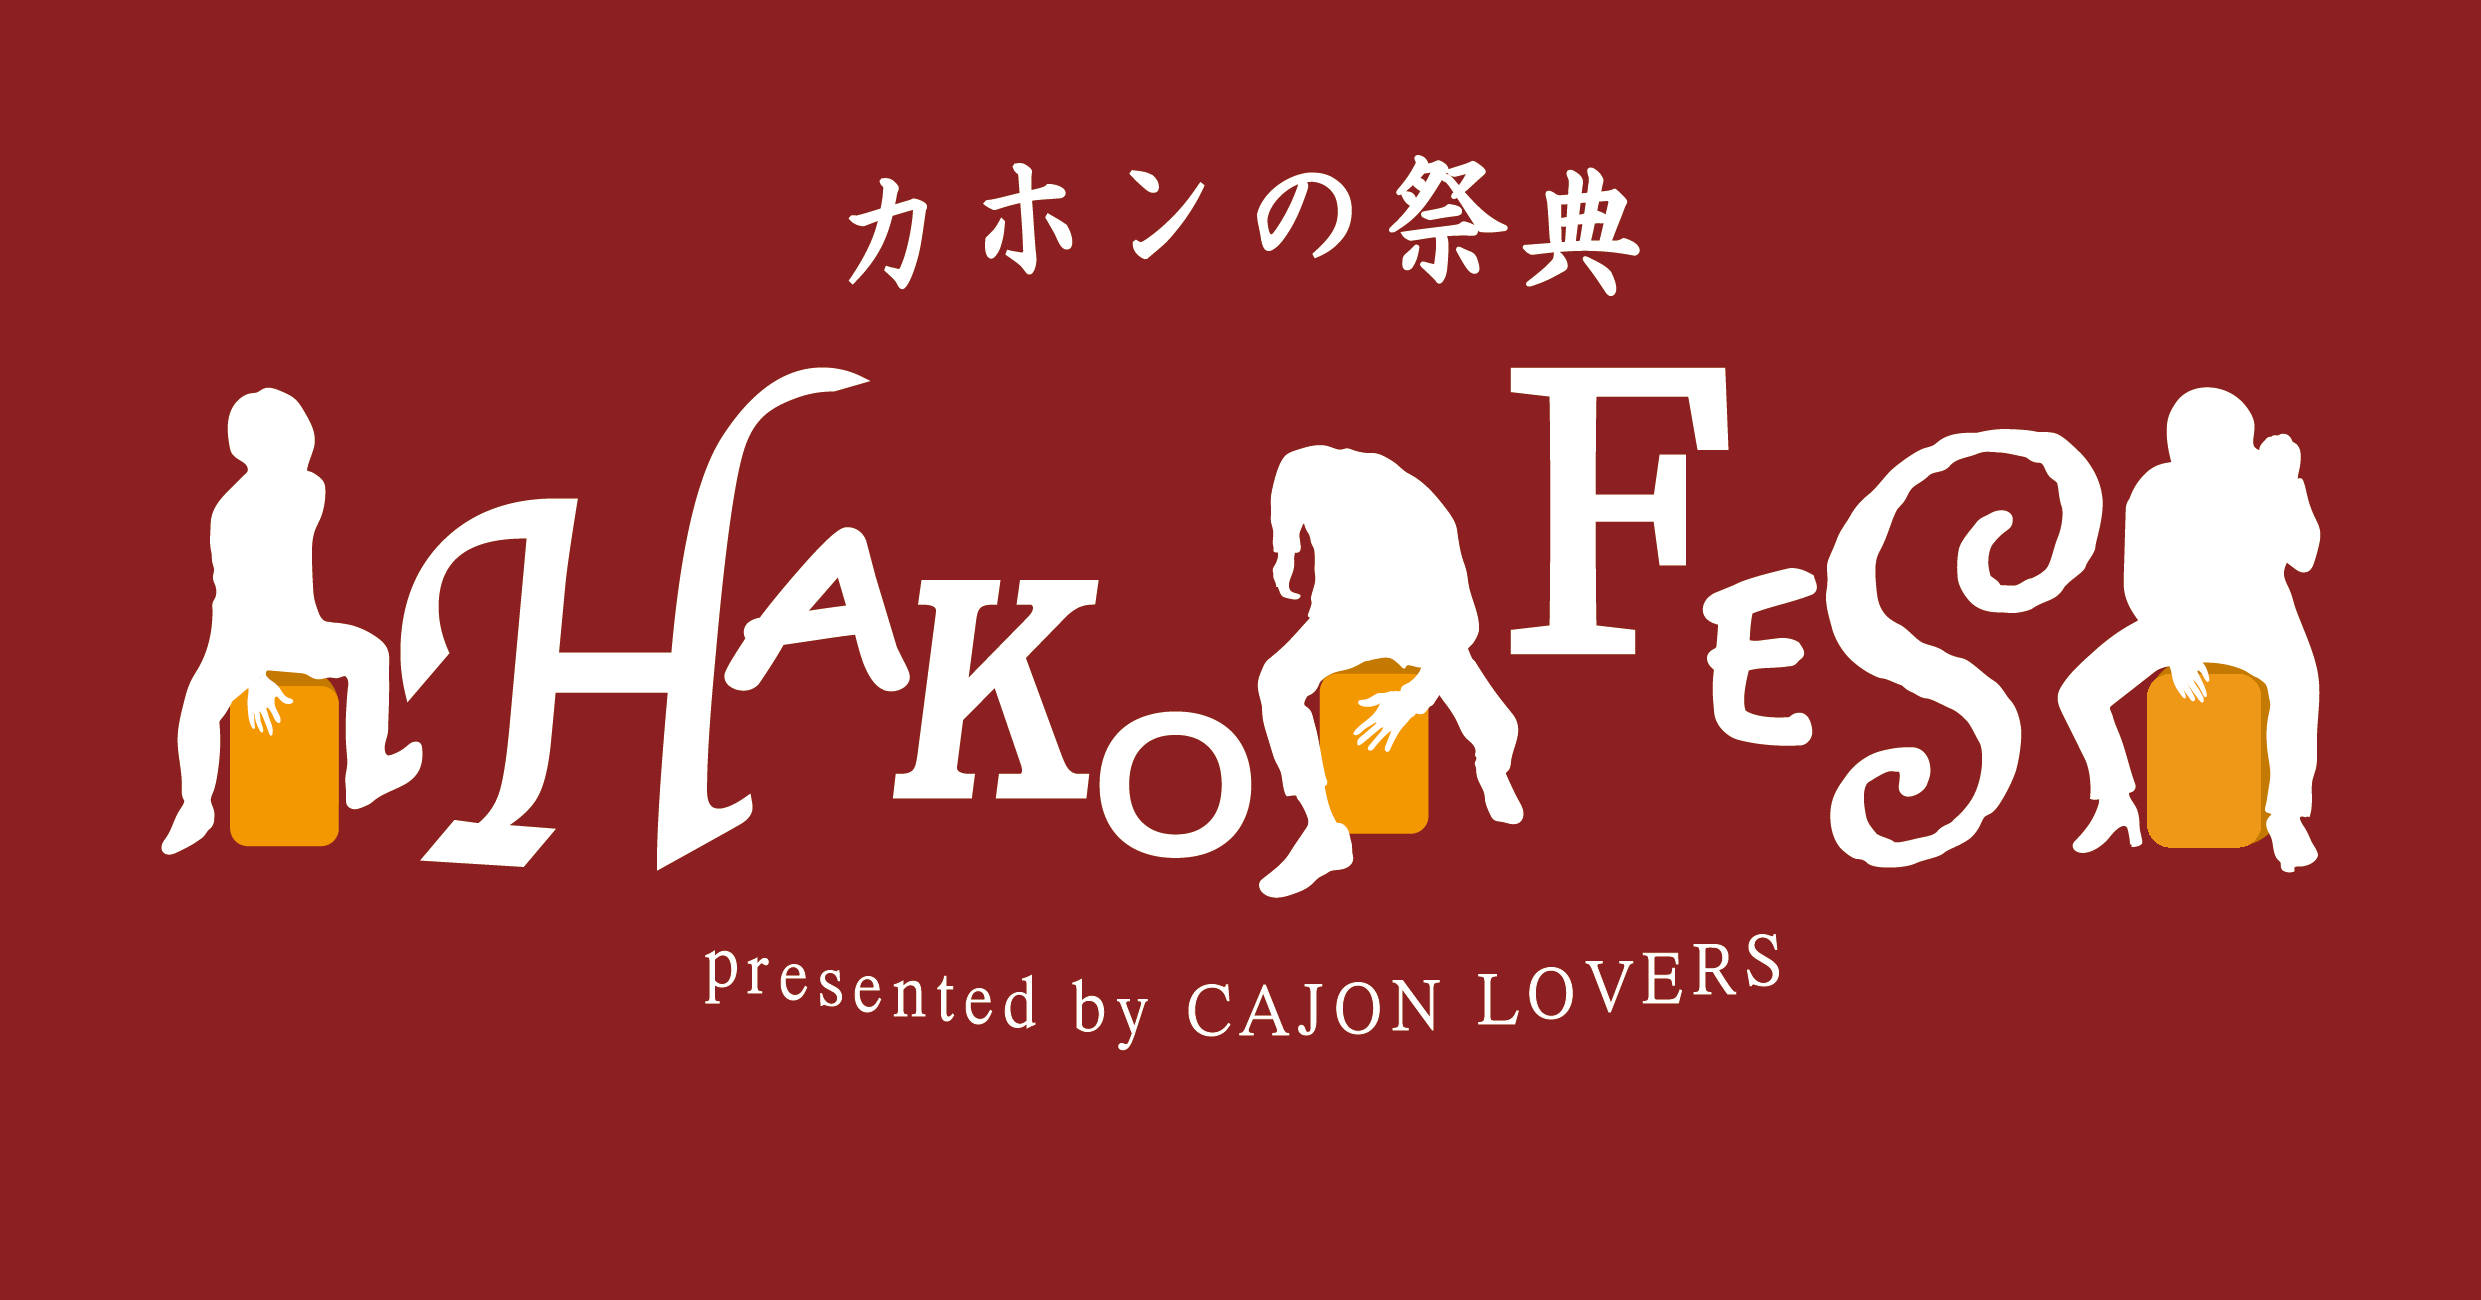 カホンの祭典 HAKO FES presented by CAJON LOVERS